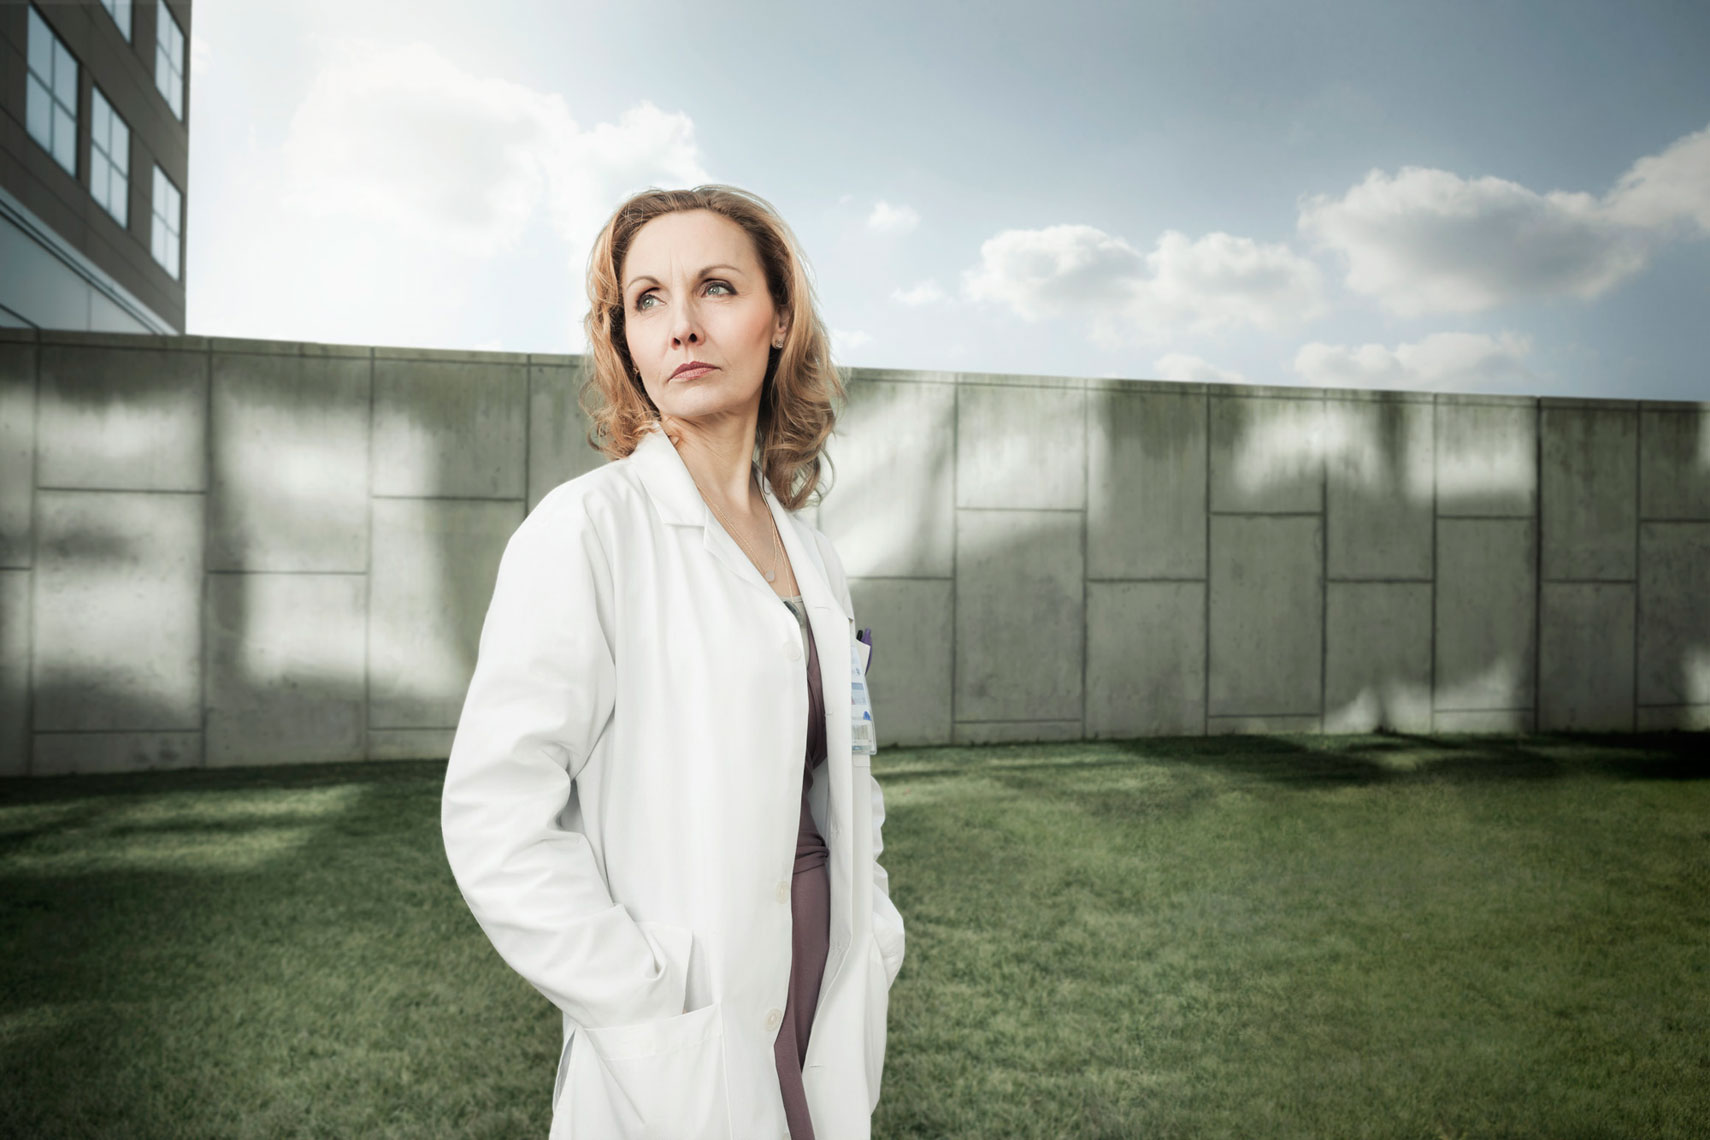 HOSPITAL: Doctor Portrait Outdoor: CORBIS